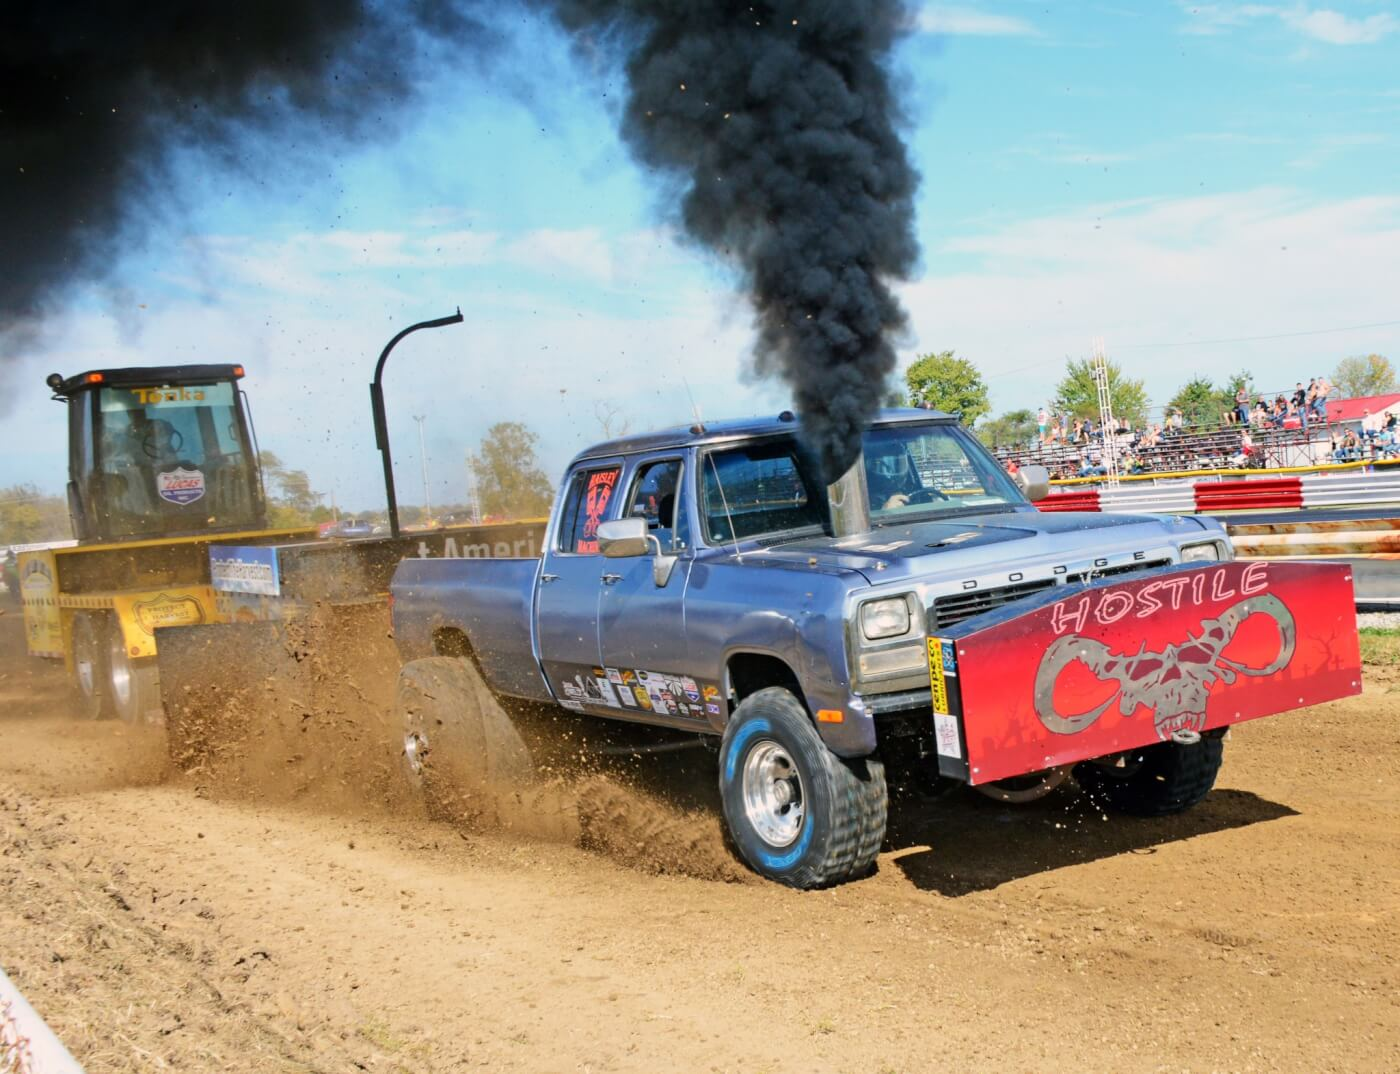 When you're making big power, you need an engine that's reliable. ARP fasteners are crucial to make your diesel engine better than stock: the engine keeps running as it puts down monster power on the track.